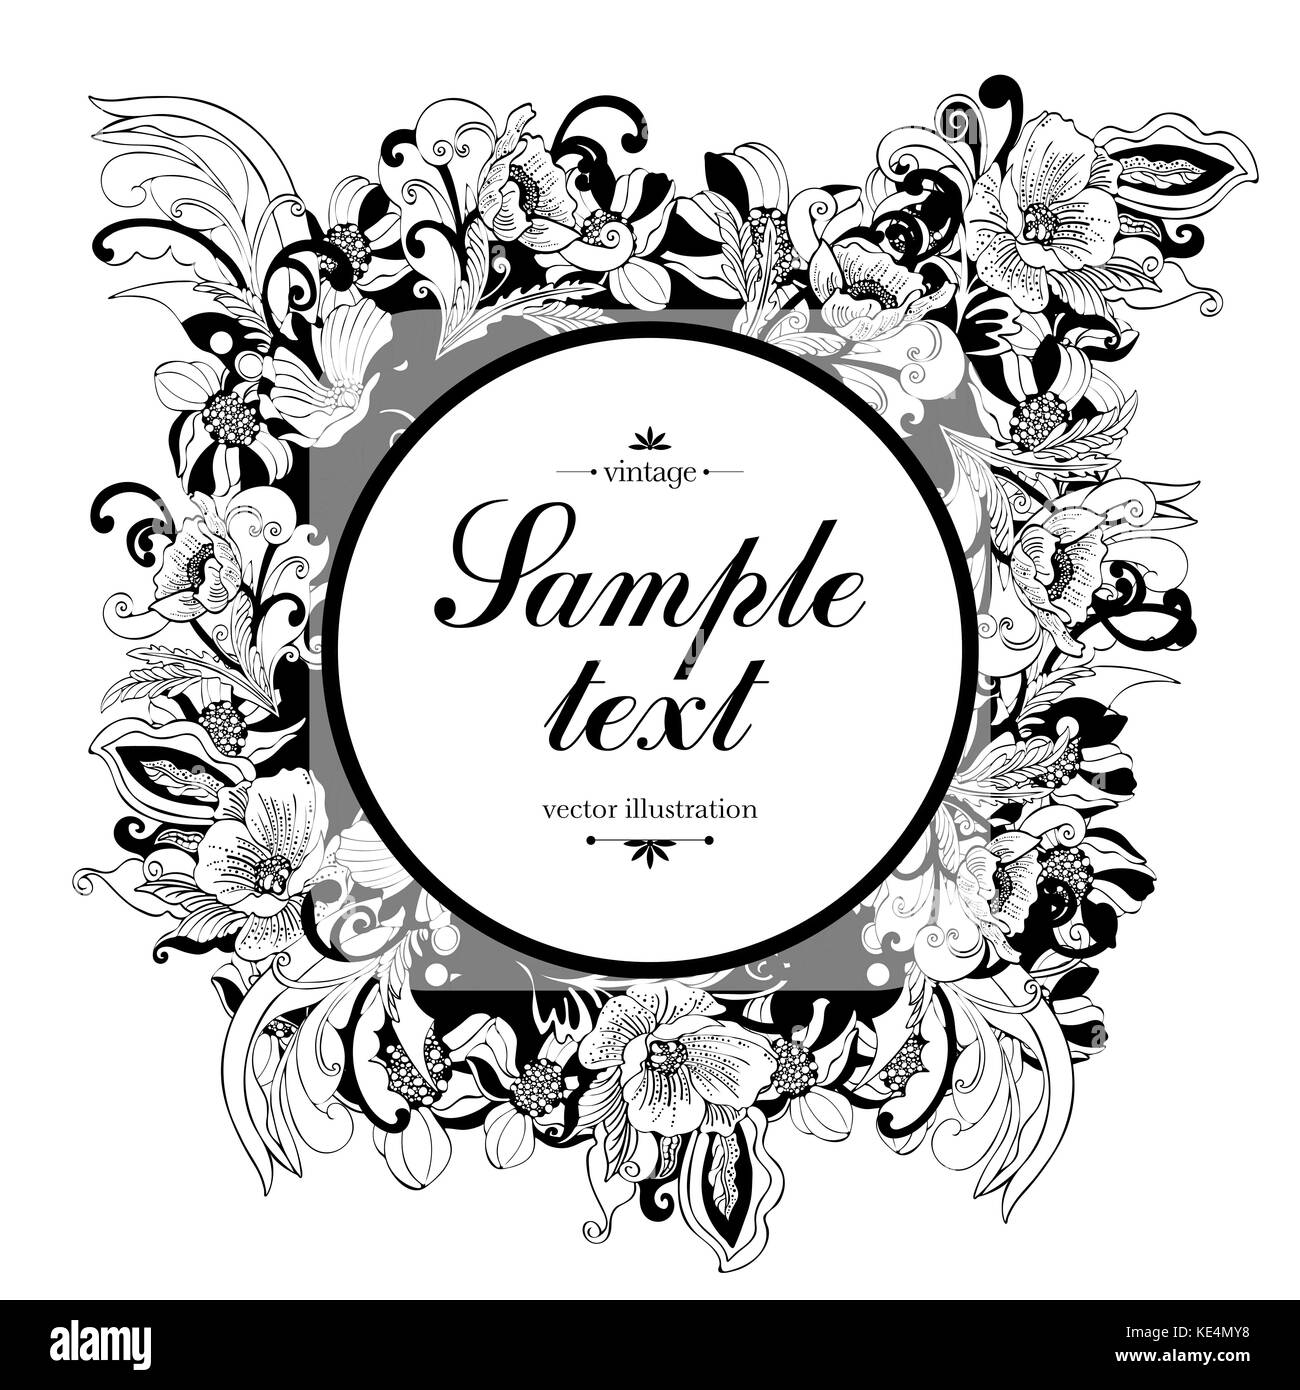 Flower round frame vector monochrome background banner floral flower round frame vector monochrome background banner floral border outline wreath abstract vector black and white flowers petals leaves curl mightylinksfo Gallery